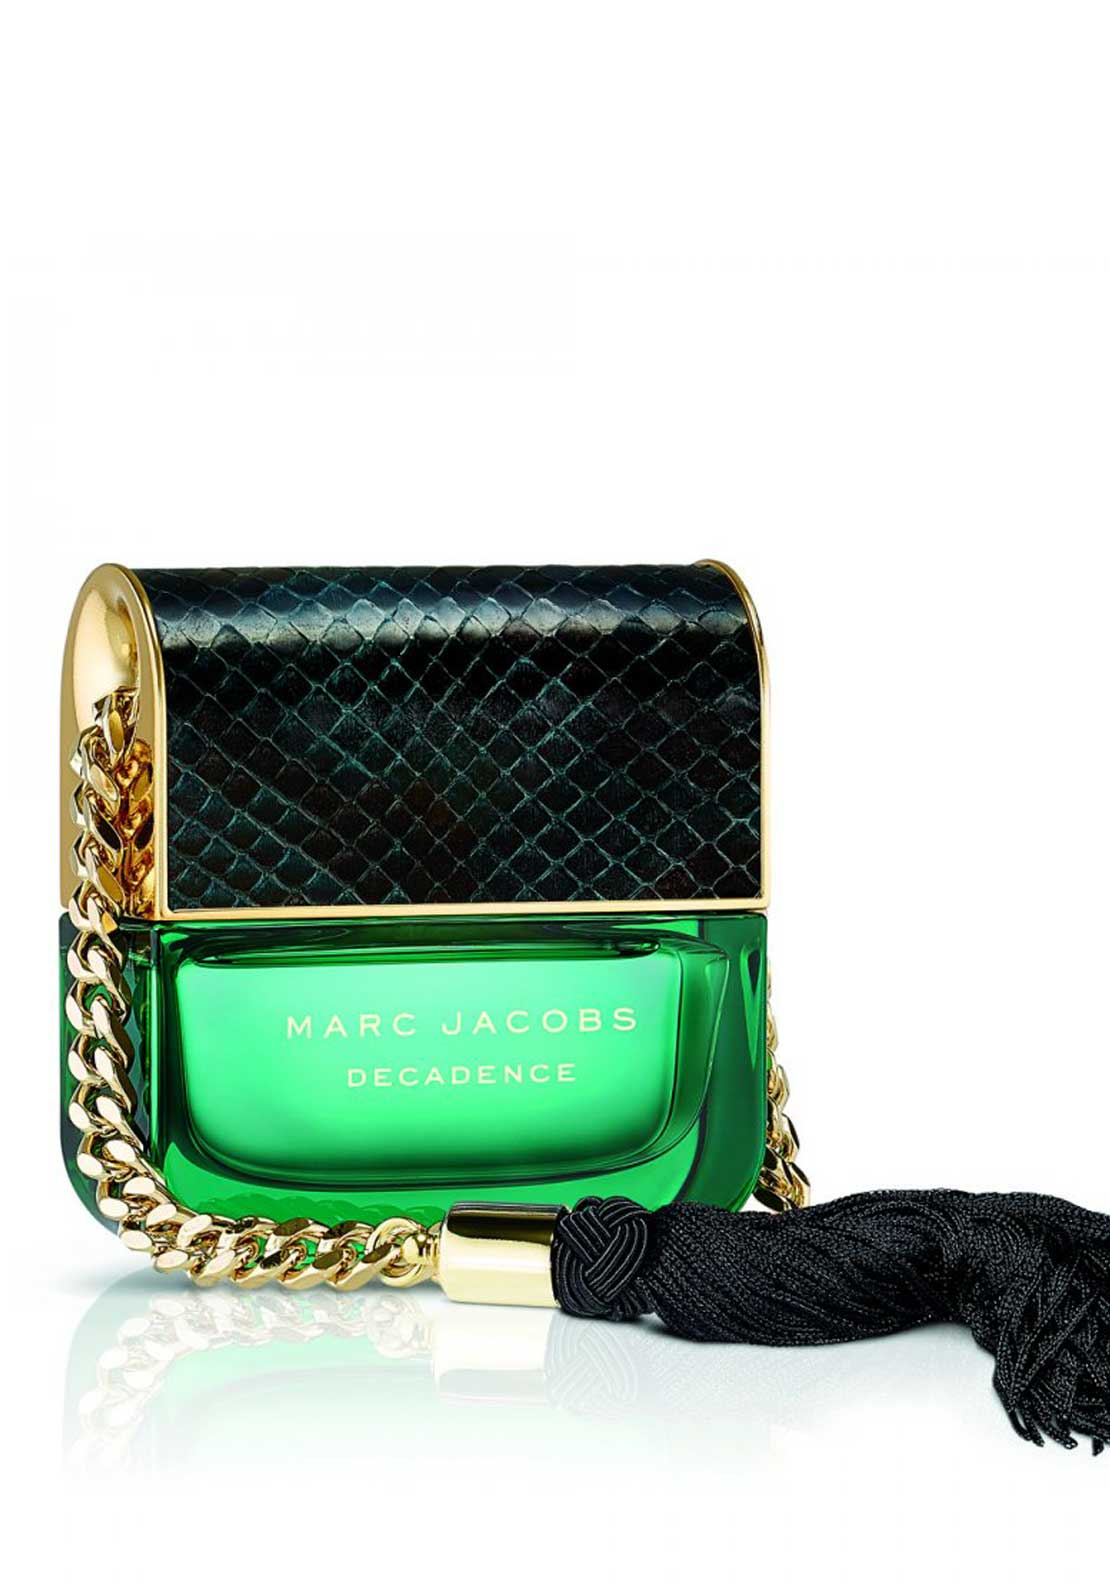 Marc Jacobs Decadence Eau de Parfum For Her, 100ml